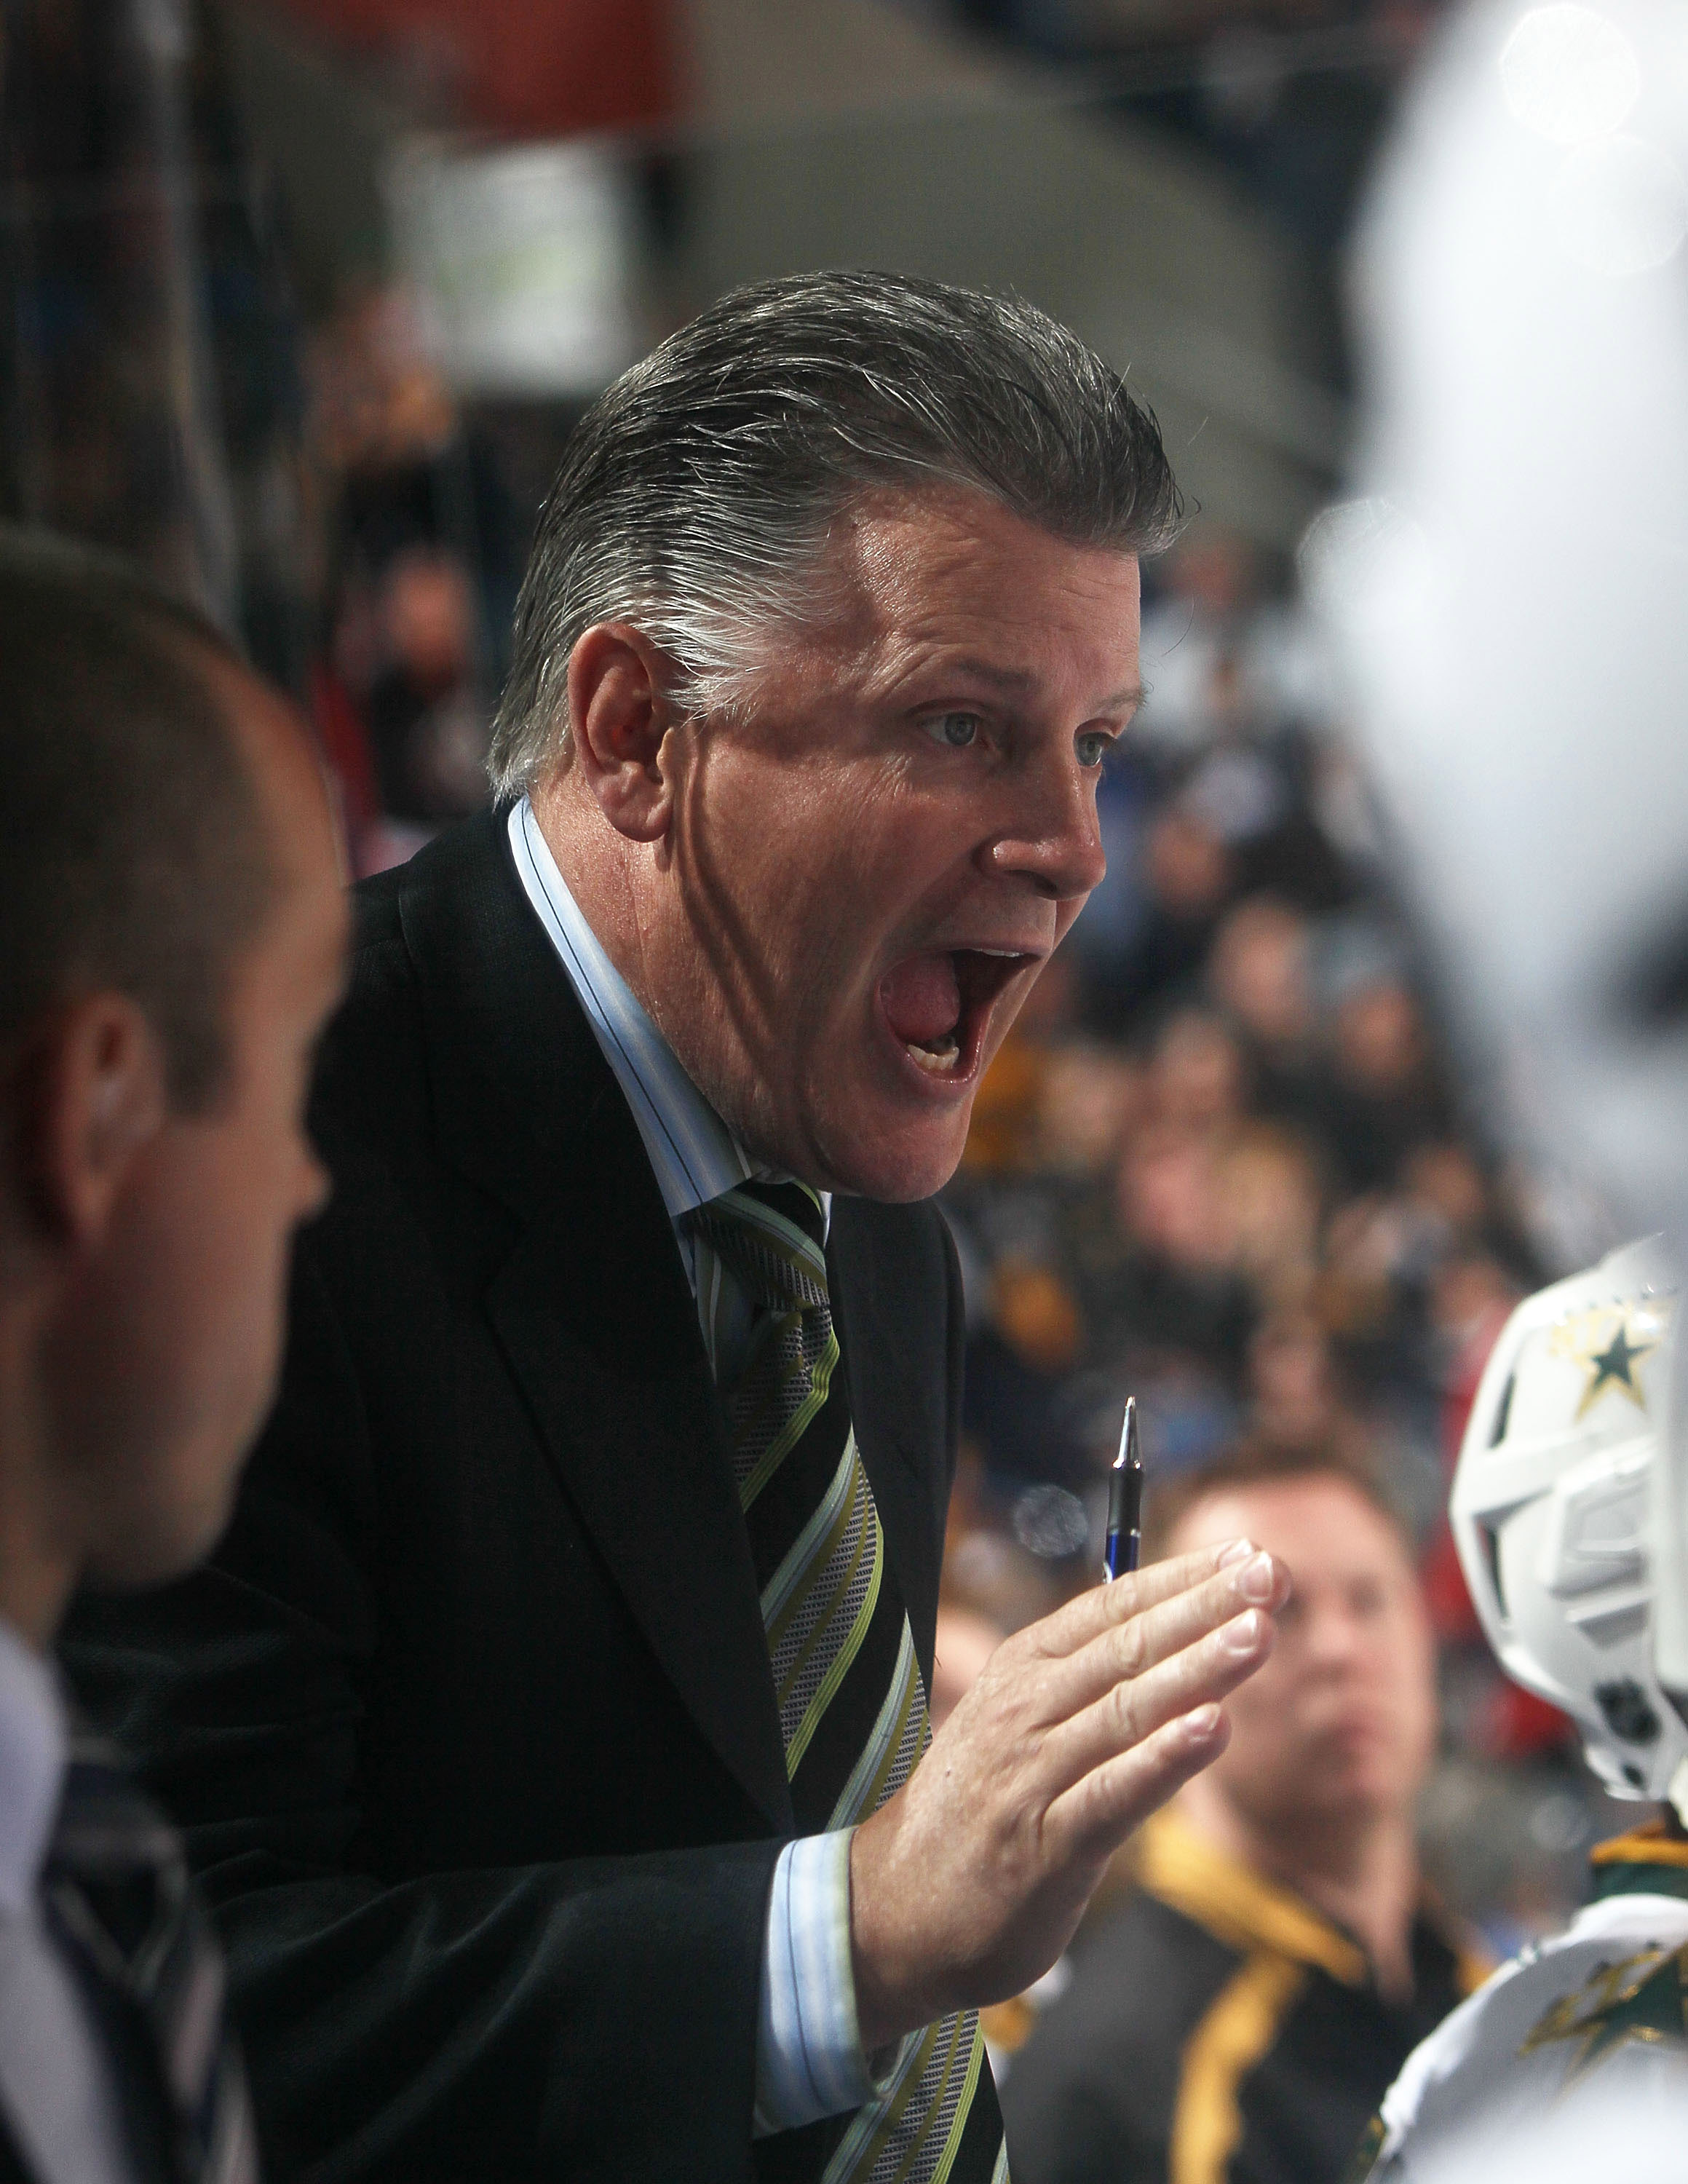 BUFFALO, NY - MARCH 10: Head coach Marc Crawford of the Dallas Stars gives last-minute instructions to his team during the game against the Buffalo Sabres at the HSBC Arena on March 10, 2010 in Buffalo, New York. The Sabres defeated the Stars 5-3. (Photo